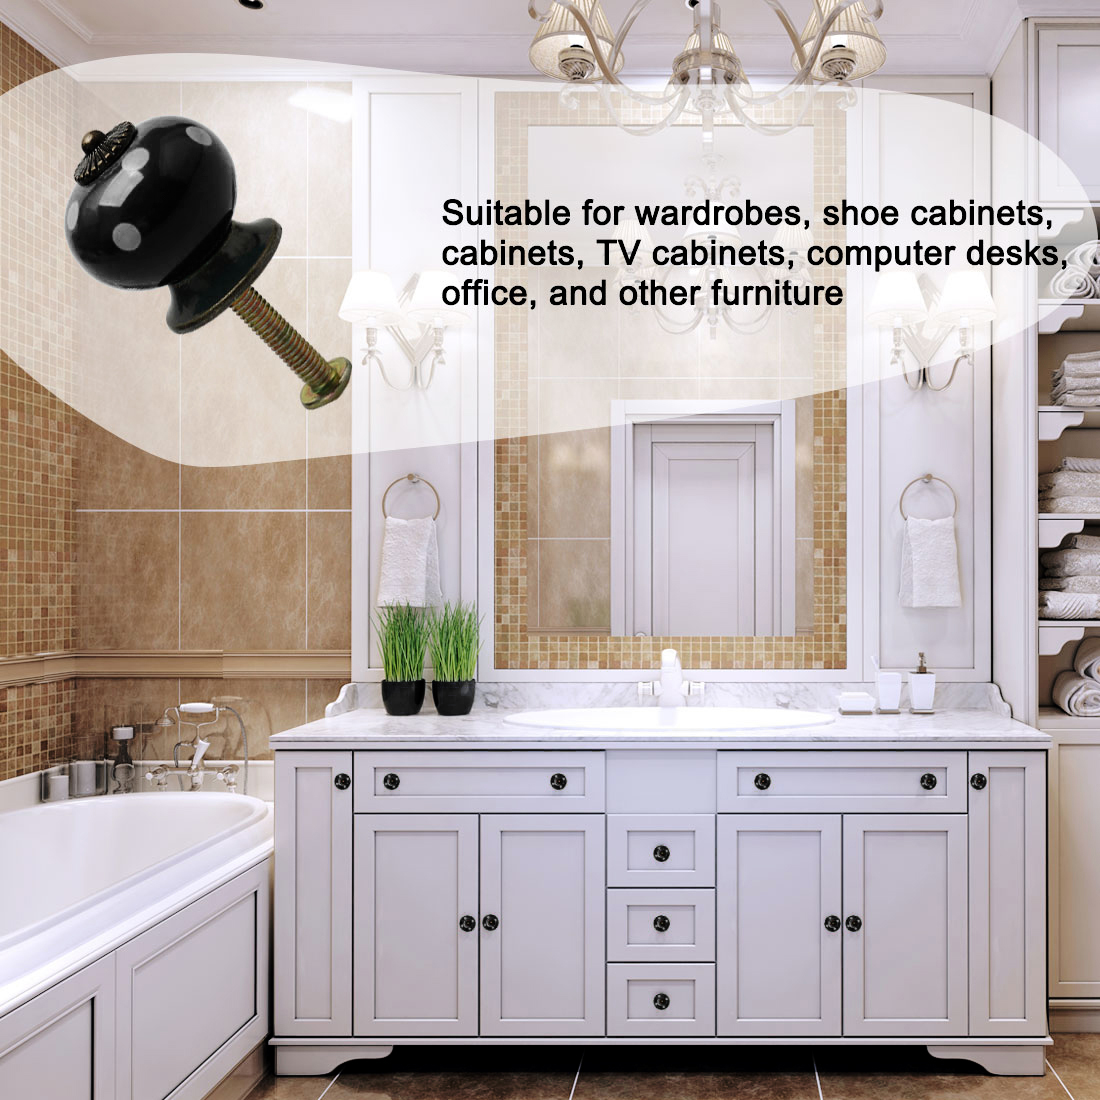 Ceramic Vintage Knob Pull Handle Dresser Cupboard Cabinet Accessories 8pcs Black - image 5 of 7